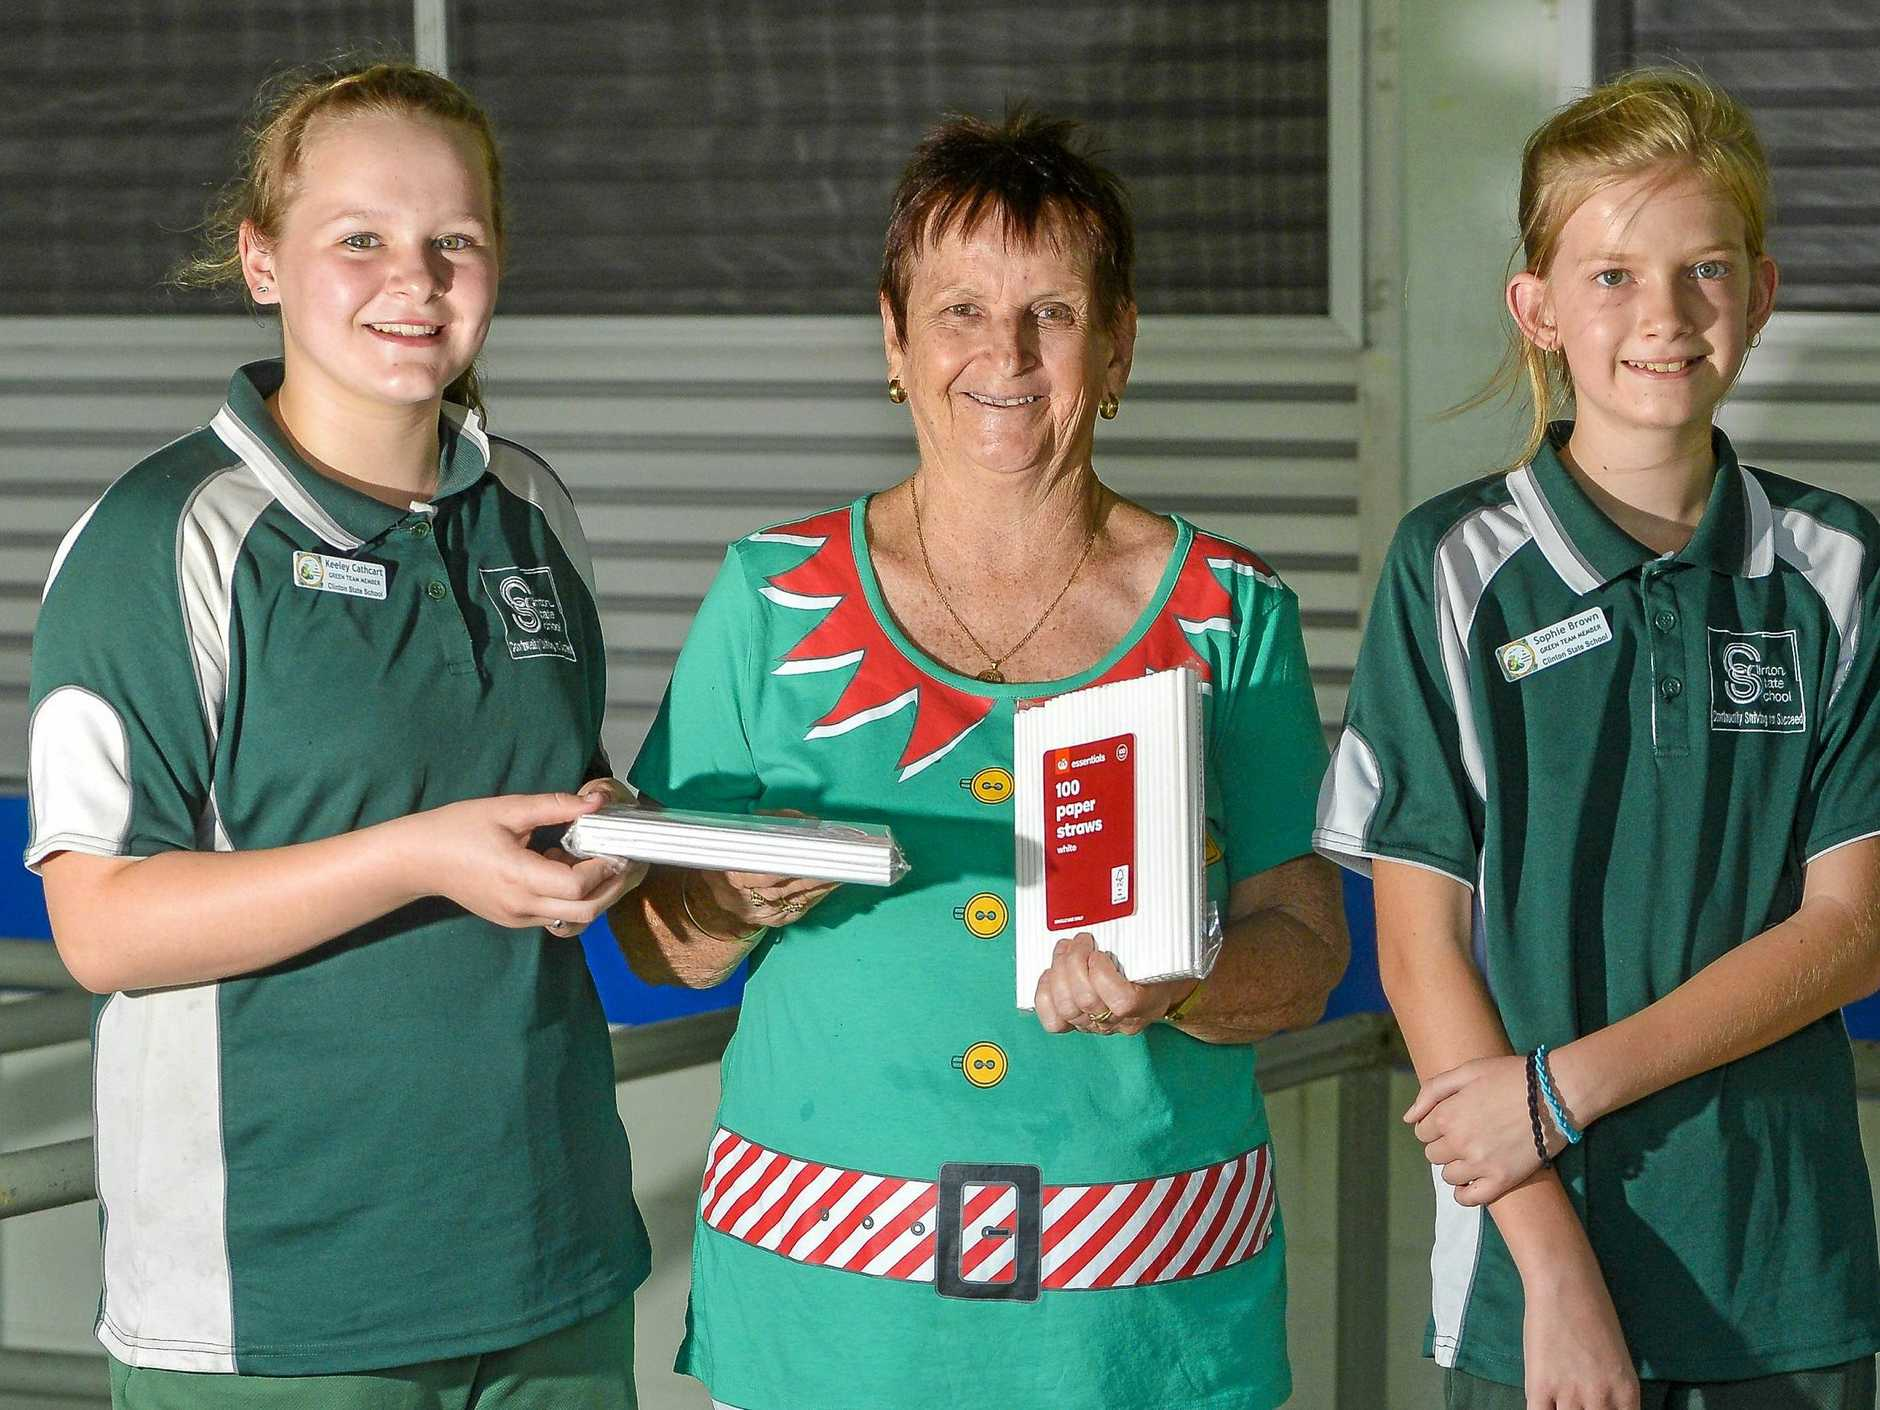 Clinton State School students Keeley Cathcart and Sophie Brown with tuckshop convenor Gail Molloy are recycling single-use plastic straws to make way for environmentally friendly paper straws.